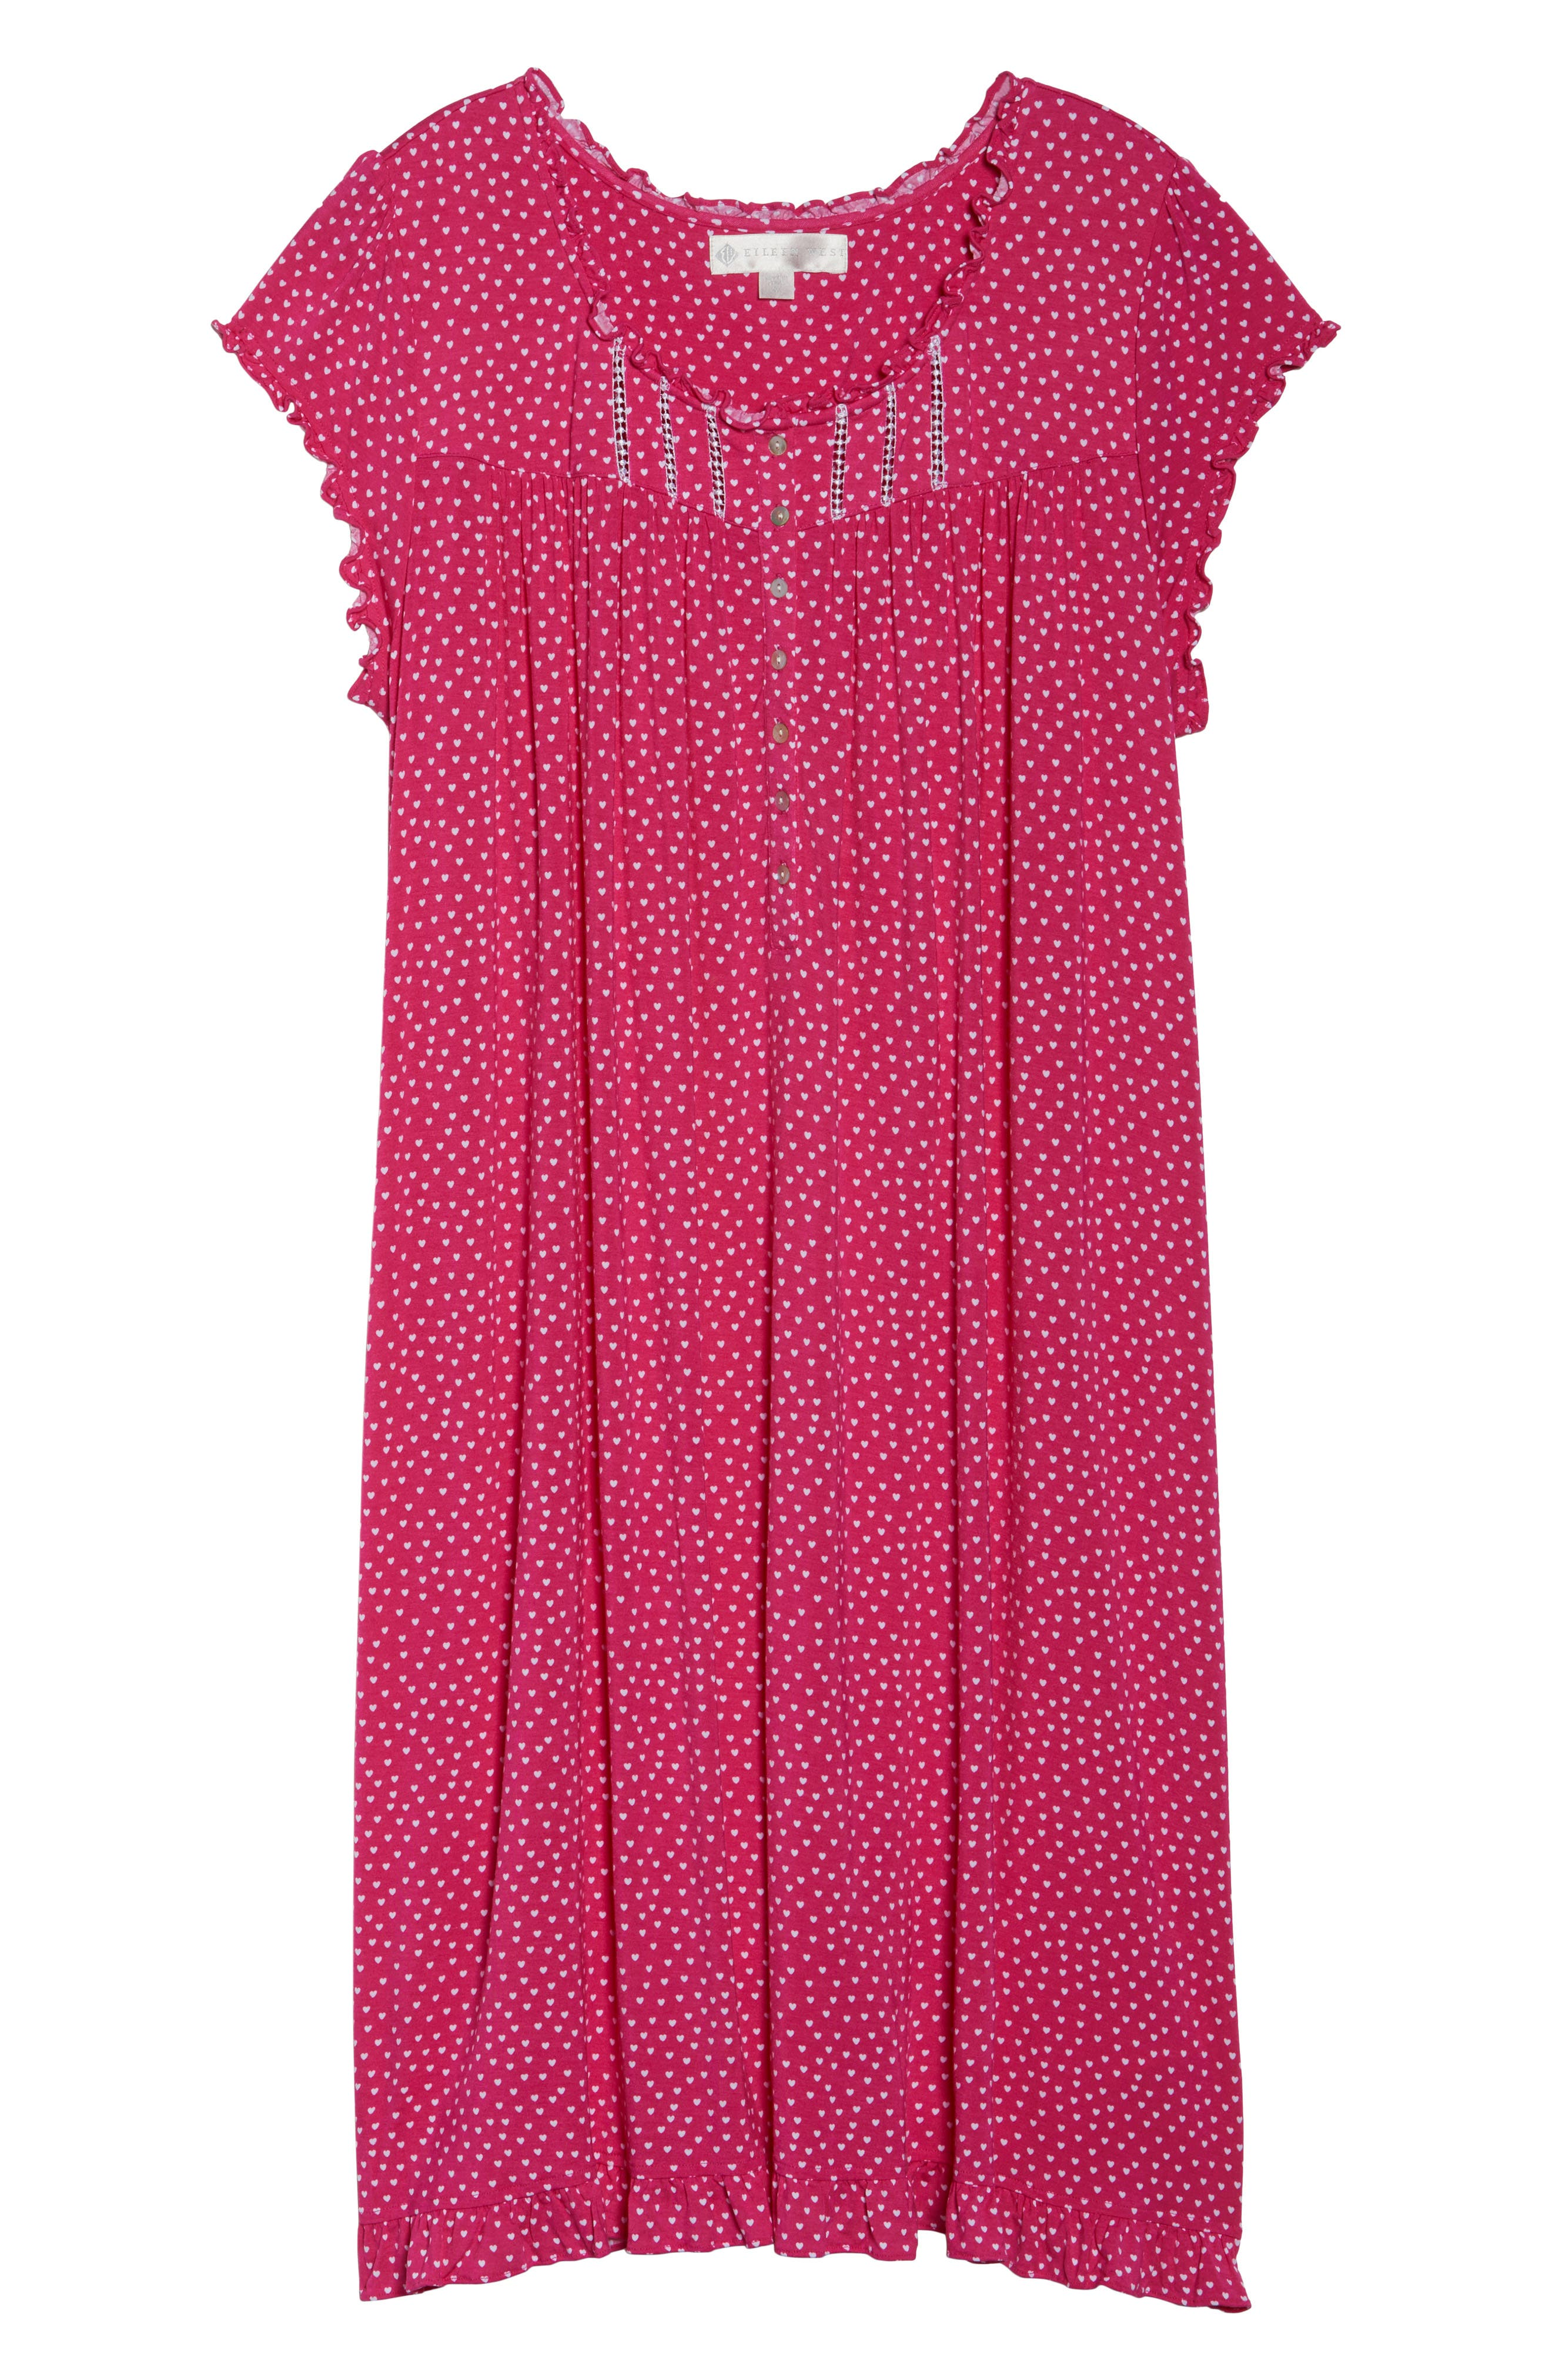 Modal Jersey Nightgown,                             Alternate thumbnail 12, color,